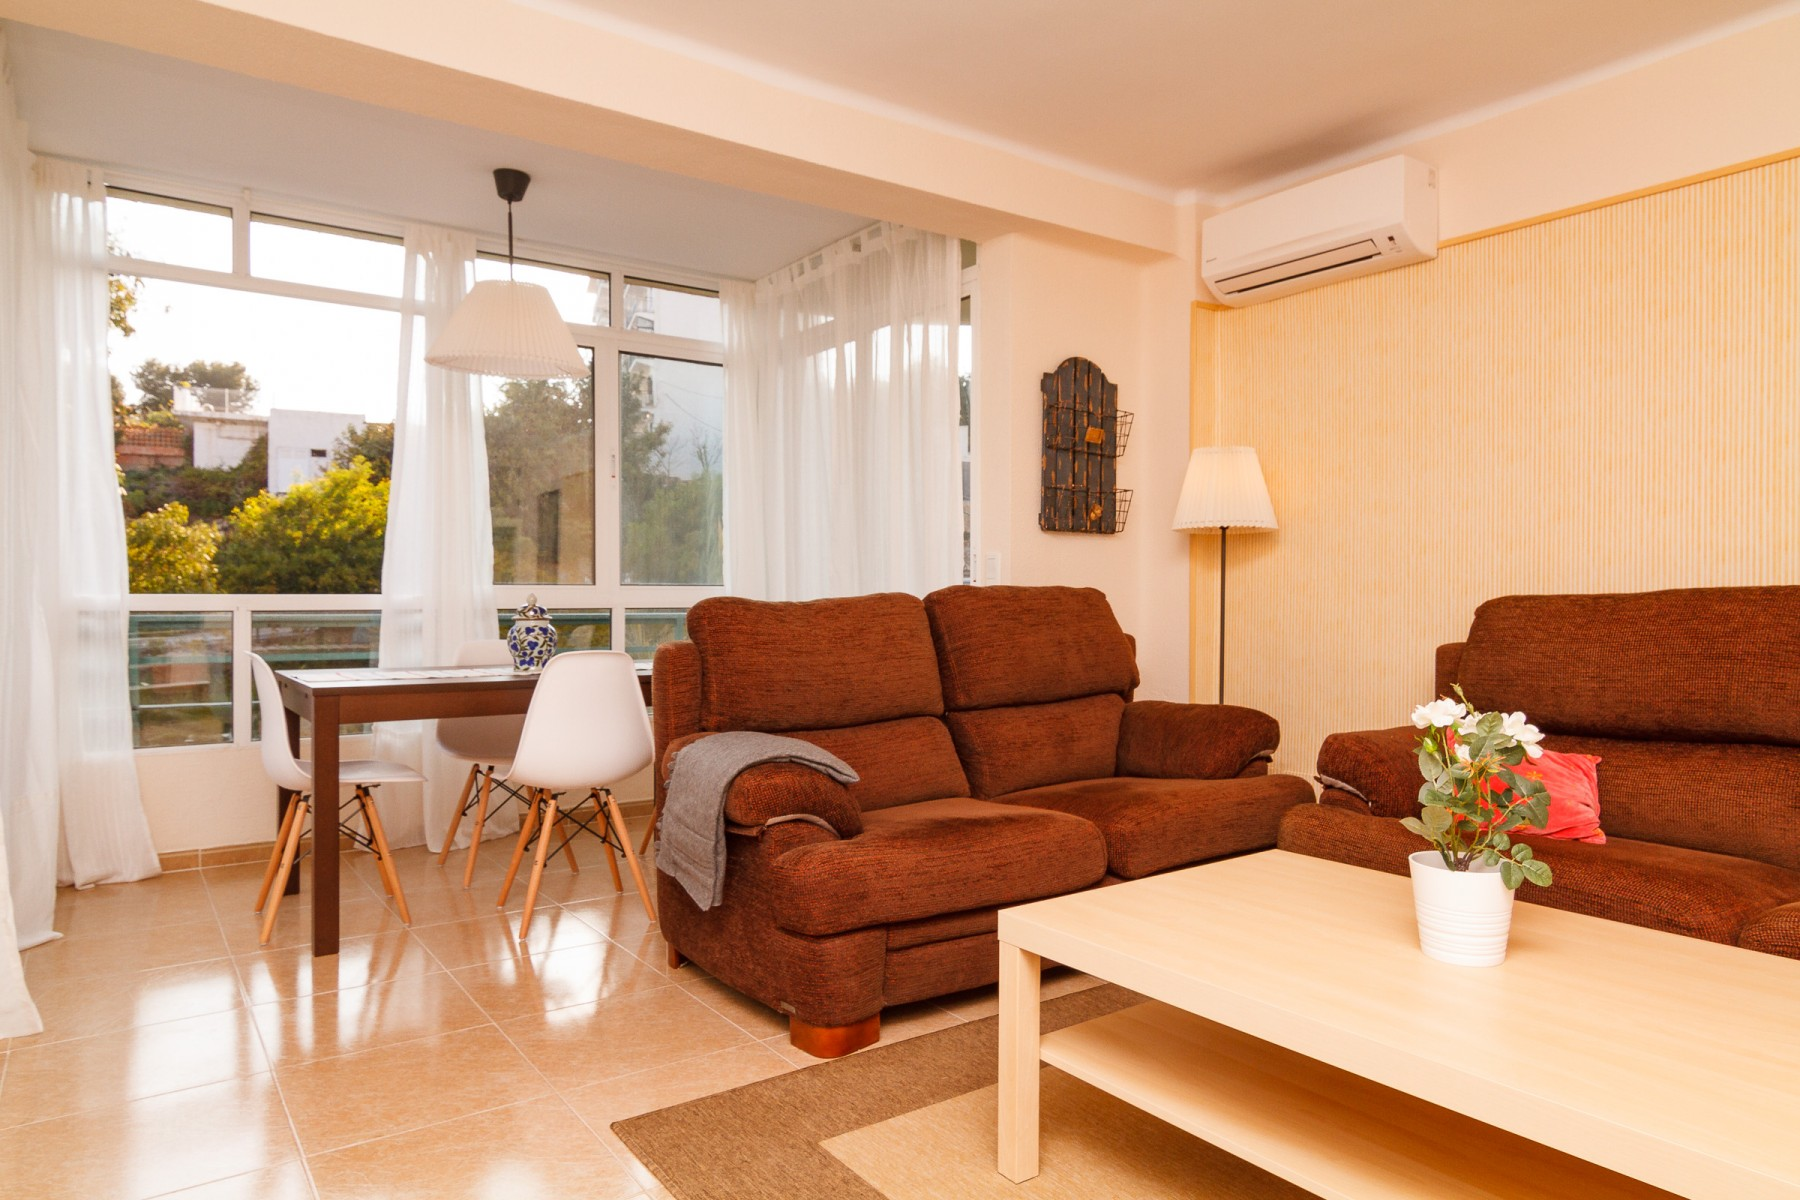 Tahiti apartment in Burriana beach area |Nerja (ES)